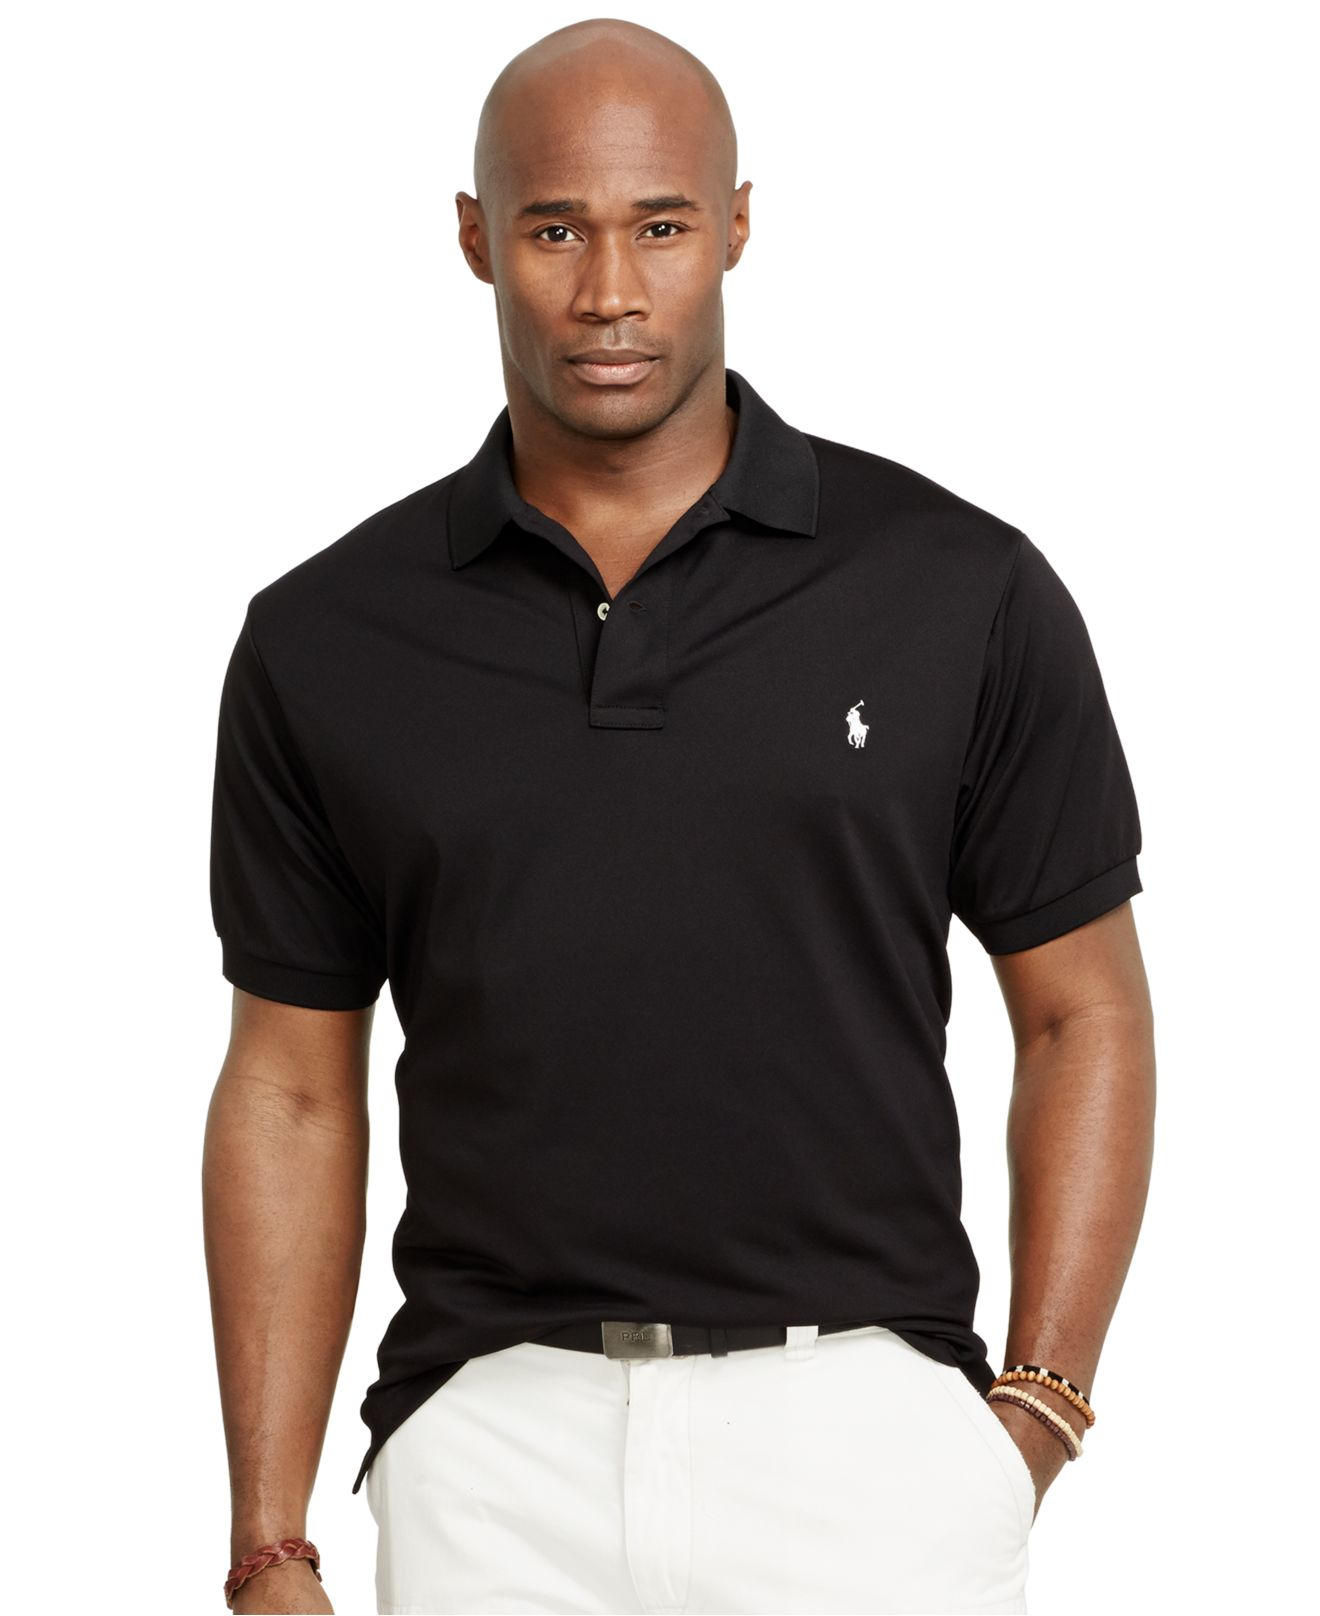 Polo ralph lauren big and tall performance mesh polo shirt Man in polo shirt